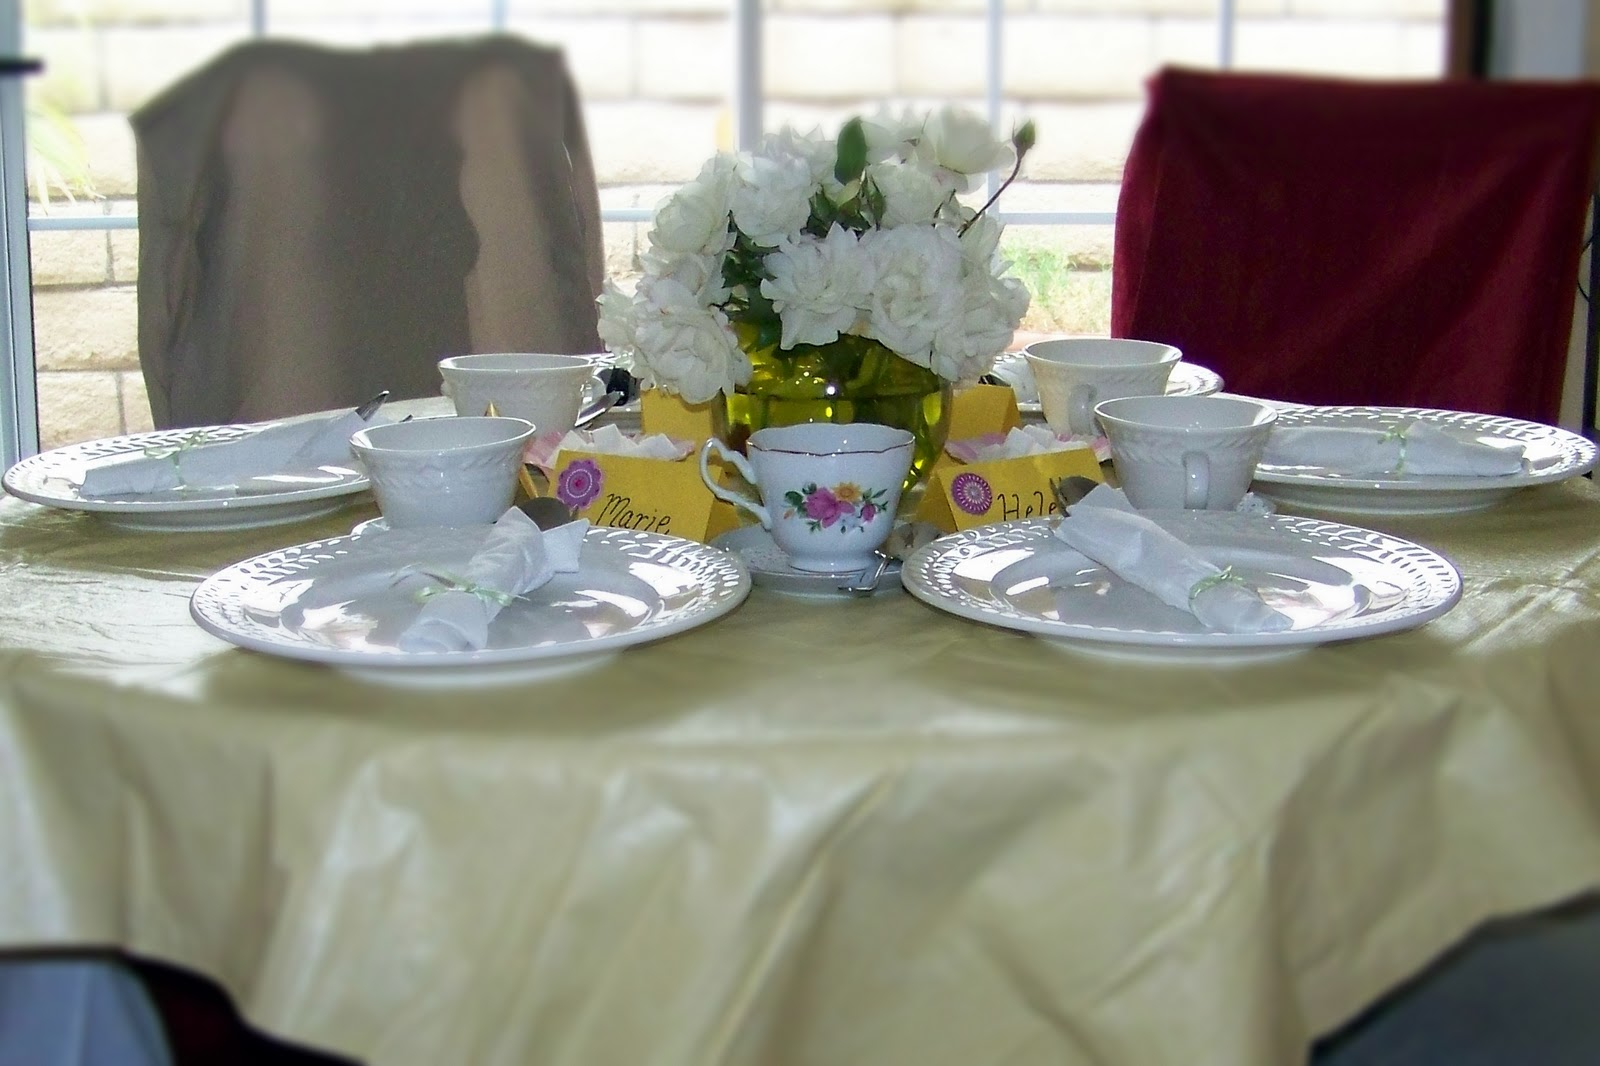 This Is The Tea Table Set Up For 5 Moms. Lovely, Isnu0027t It? Itu0027s A Wonderful  Idea For Girlsu0027 Night Out, But In A Lovely Way.